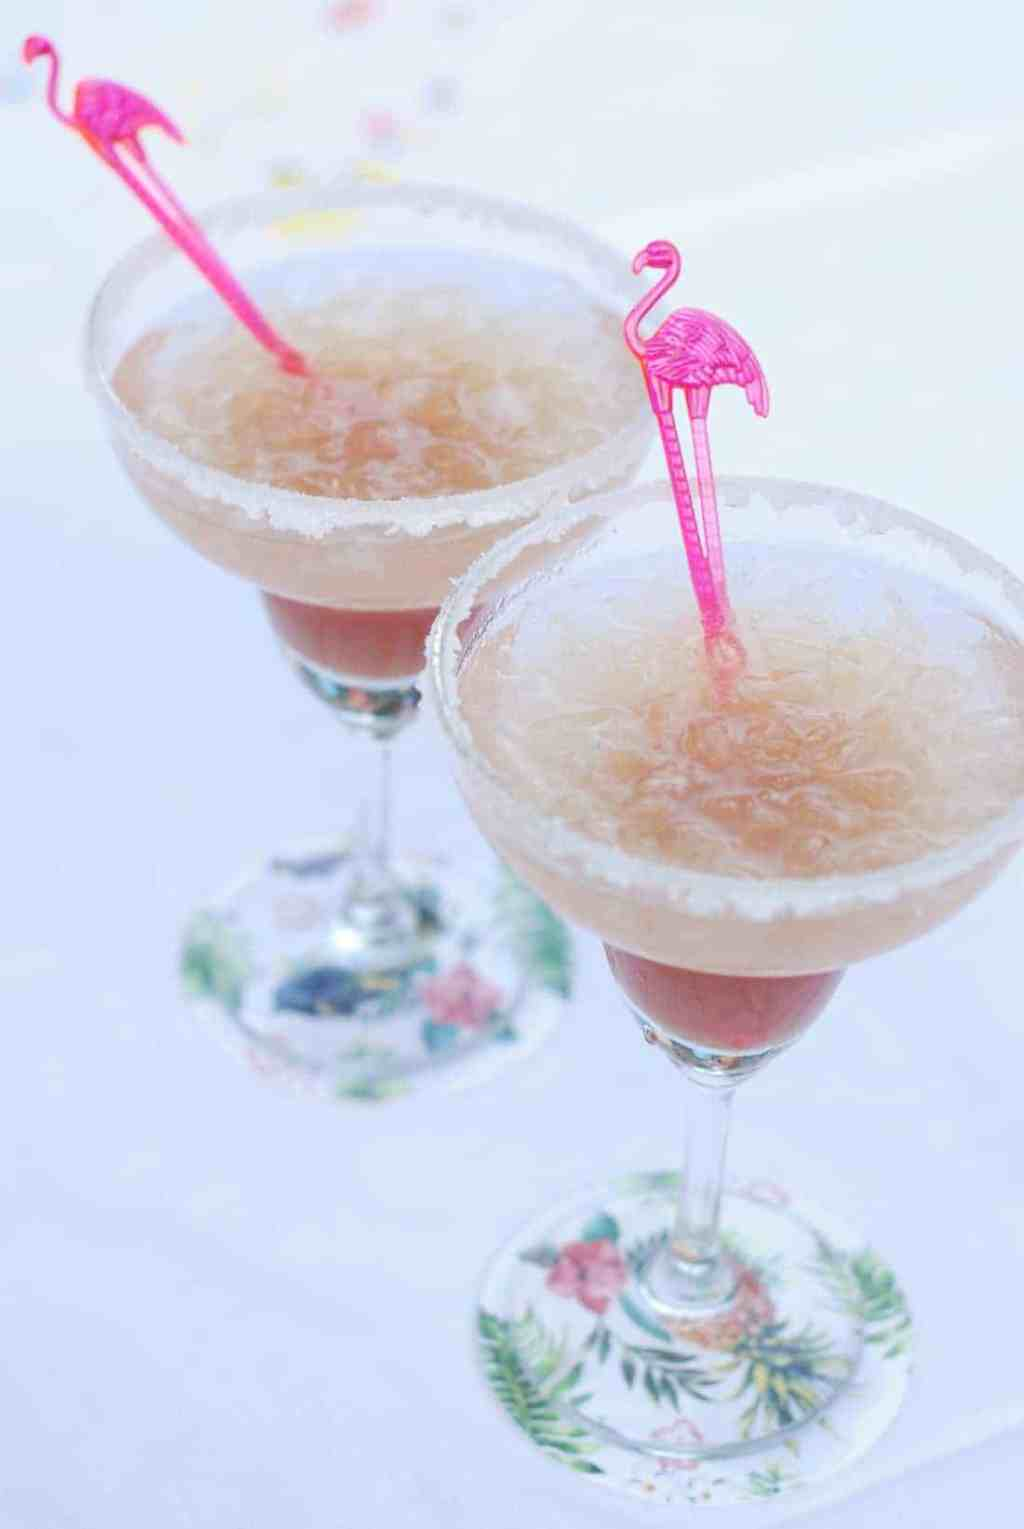 a gin and rhubarb cocktail